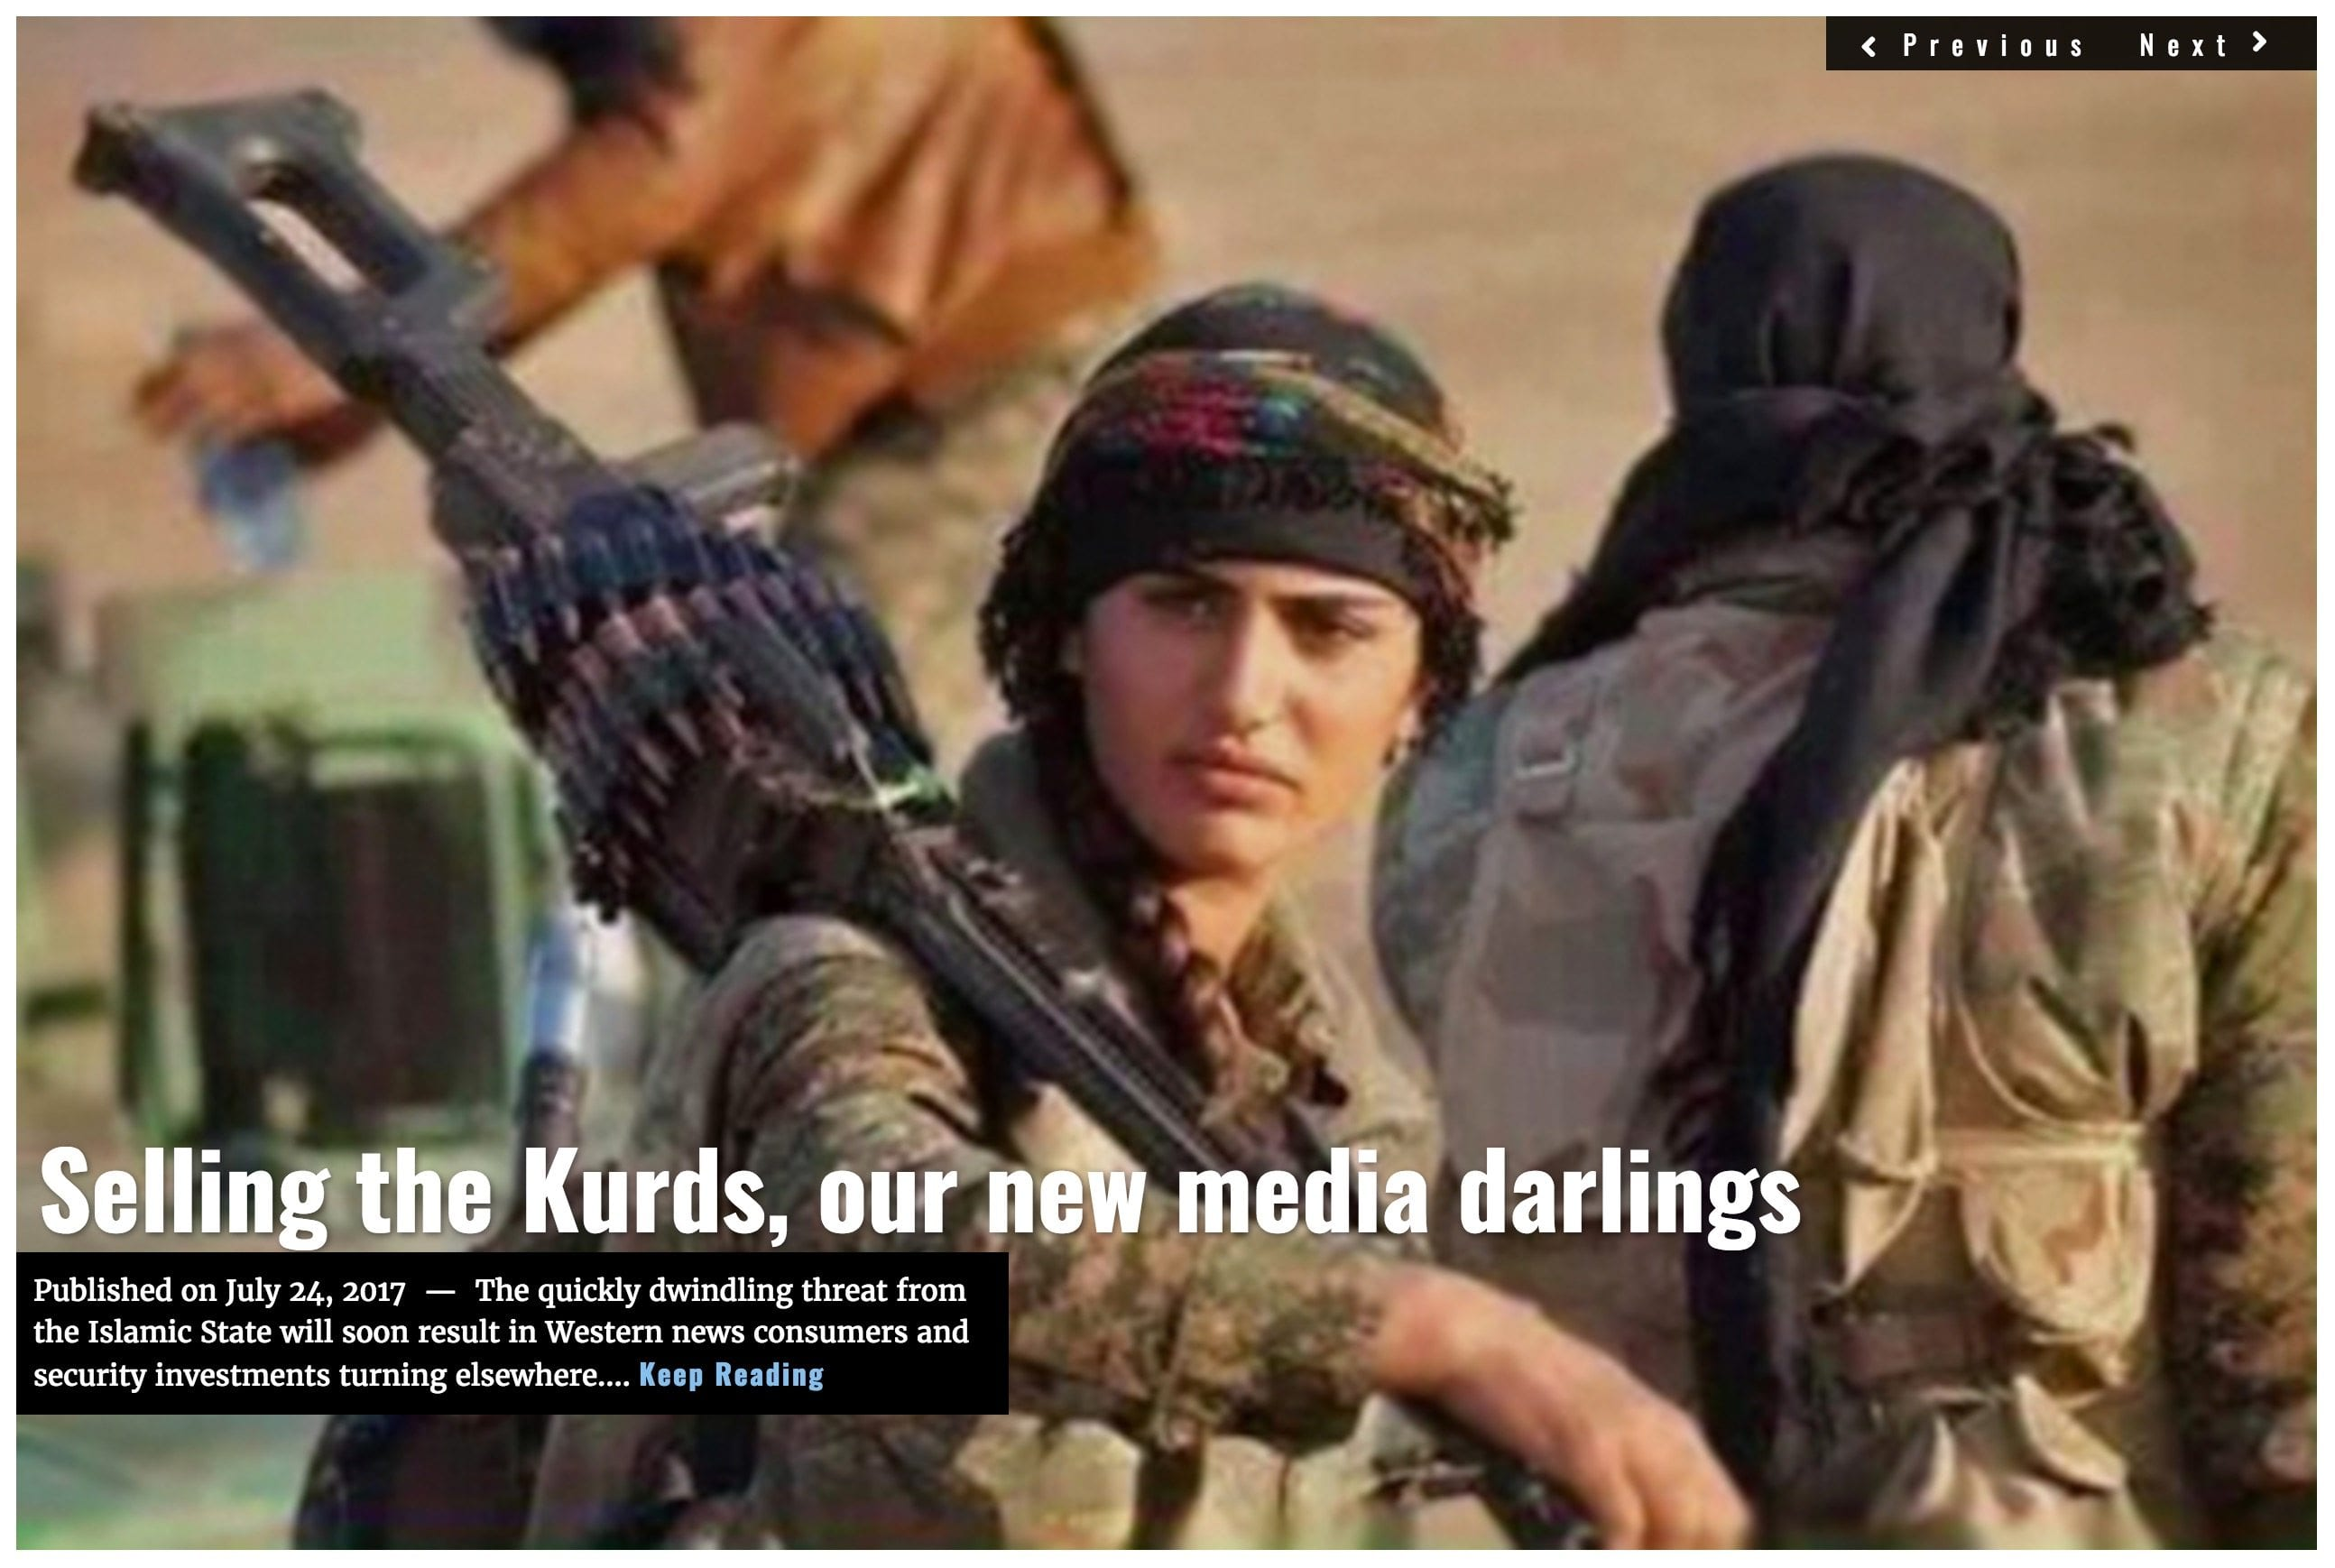 Image Lima Charlie News headline Kurds